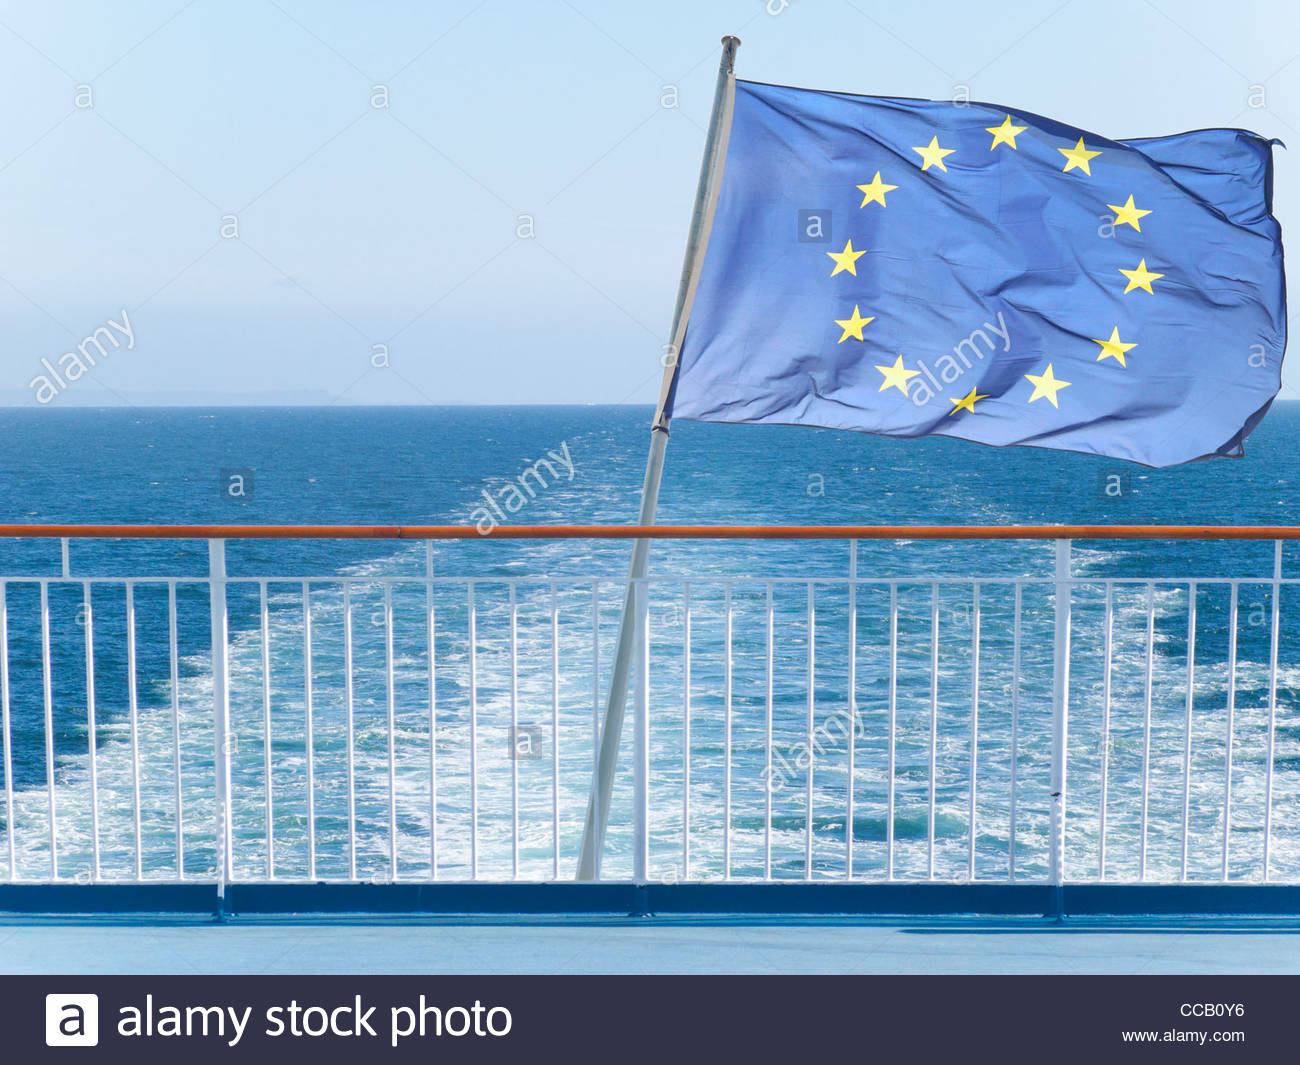 European Union flag on railing of ship with ocean water in background - Stock Image